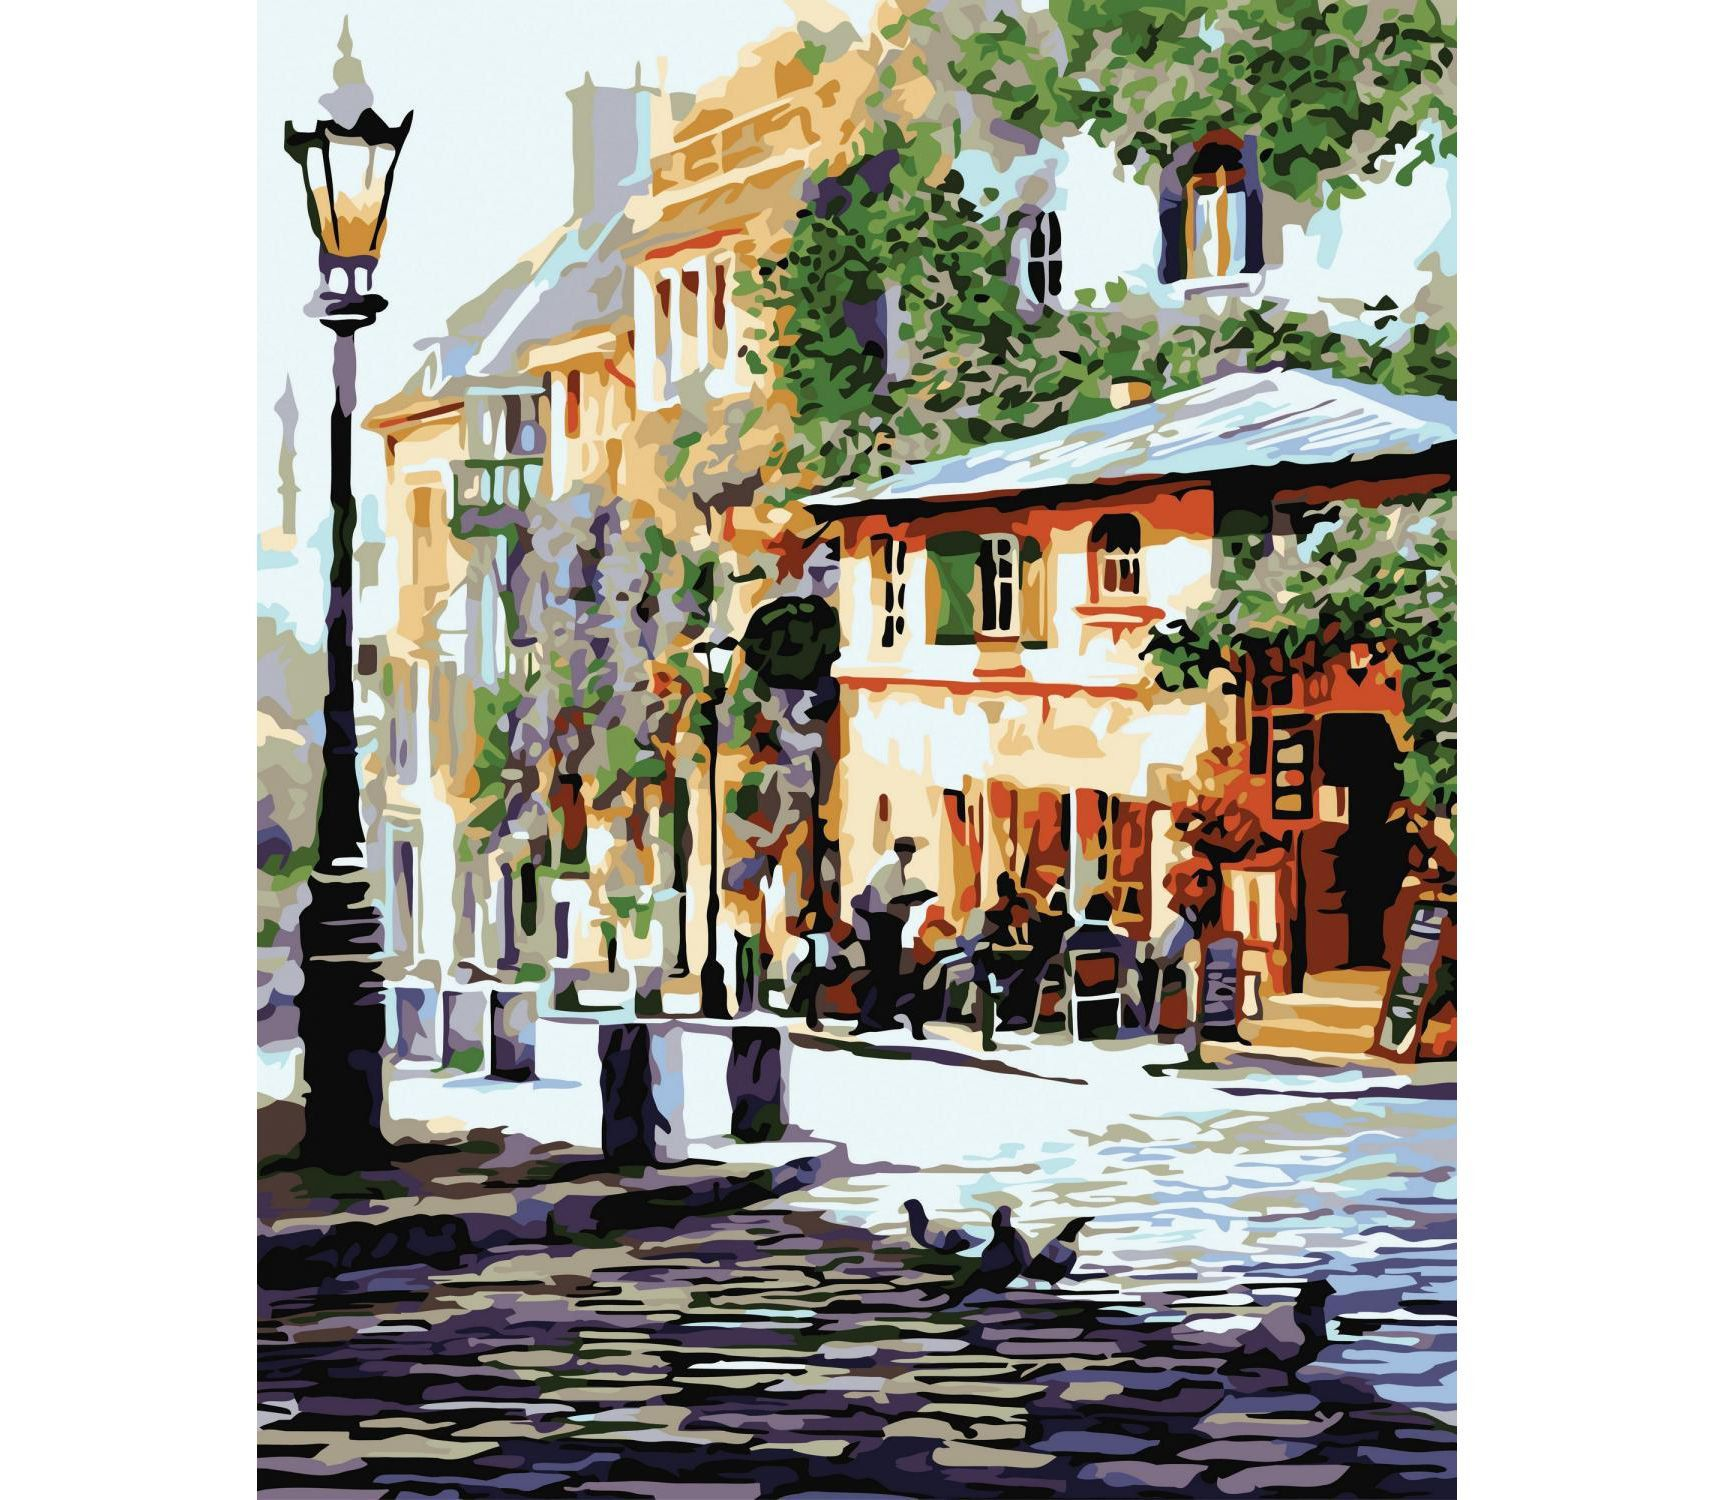 Paint by numbers kit Painting DIY Cozy cafe 16x20 inch